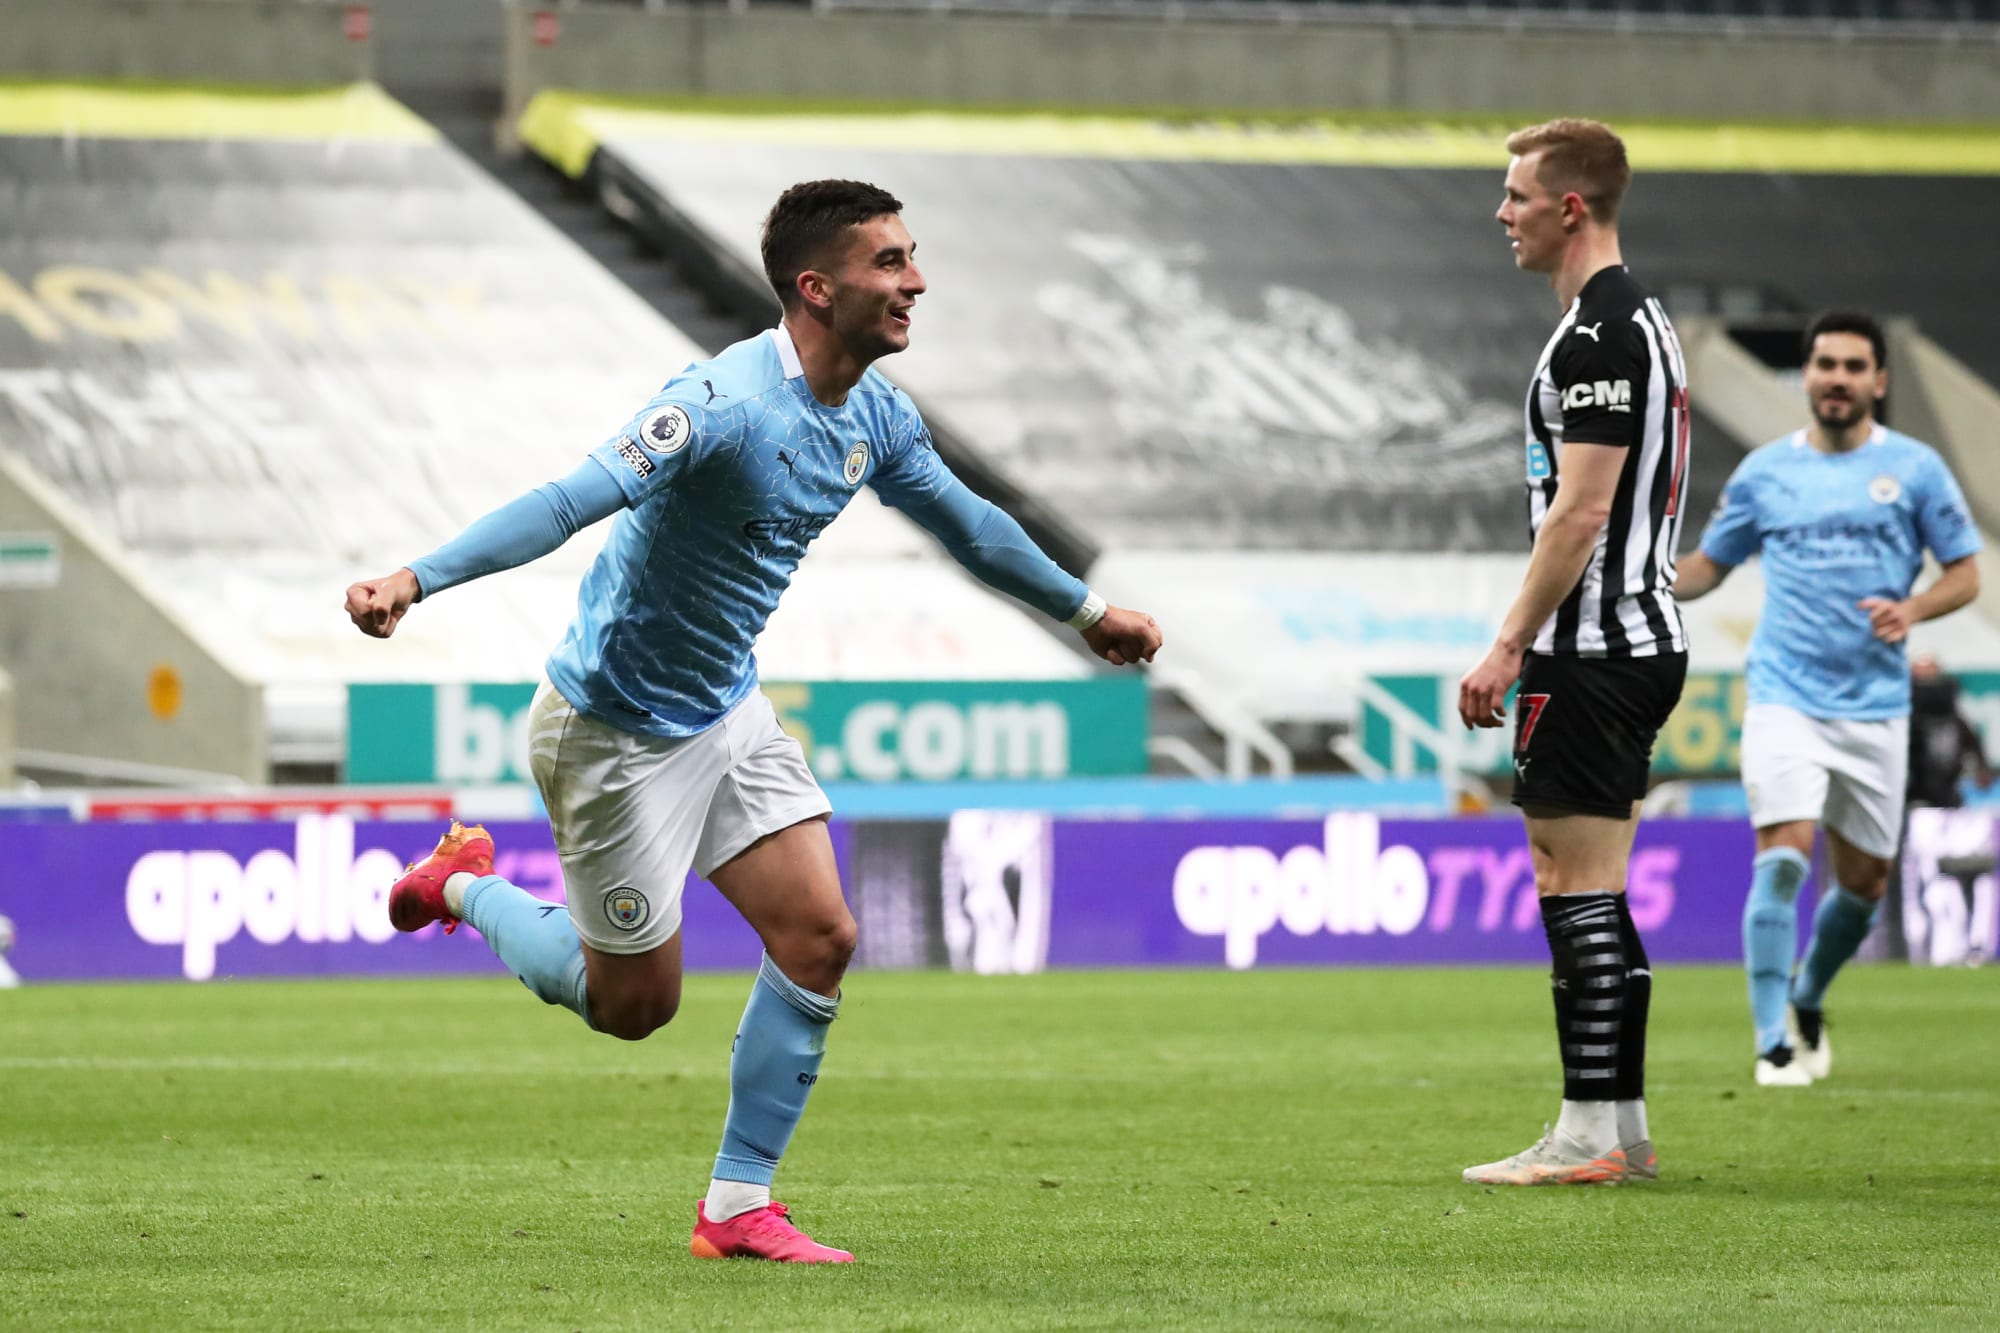 Newcastle United 3-4 Manchester City: A Wild Ride